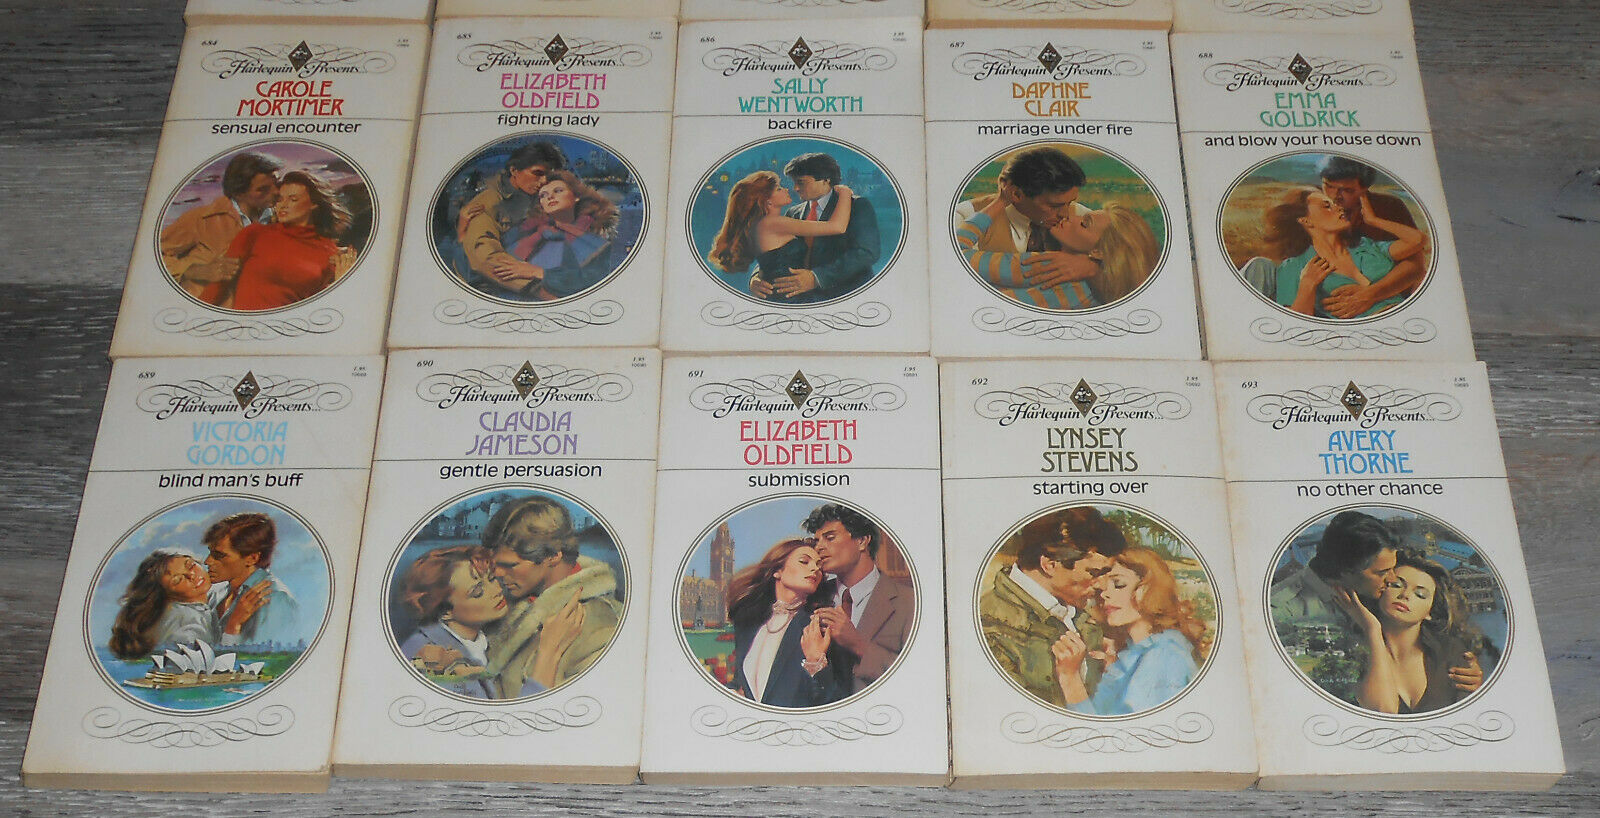 Lot of 26 Harlequin Presents Romance Paperbacks Lot C #658//694  1984 |